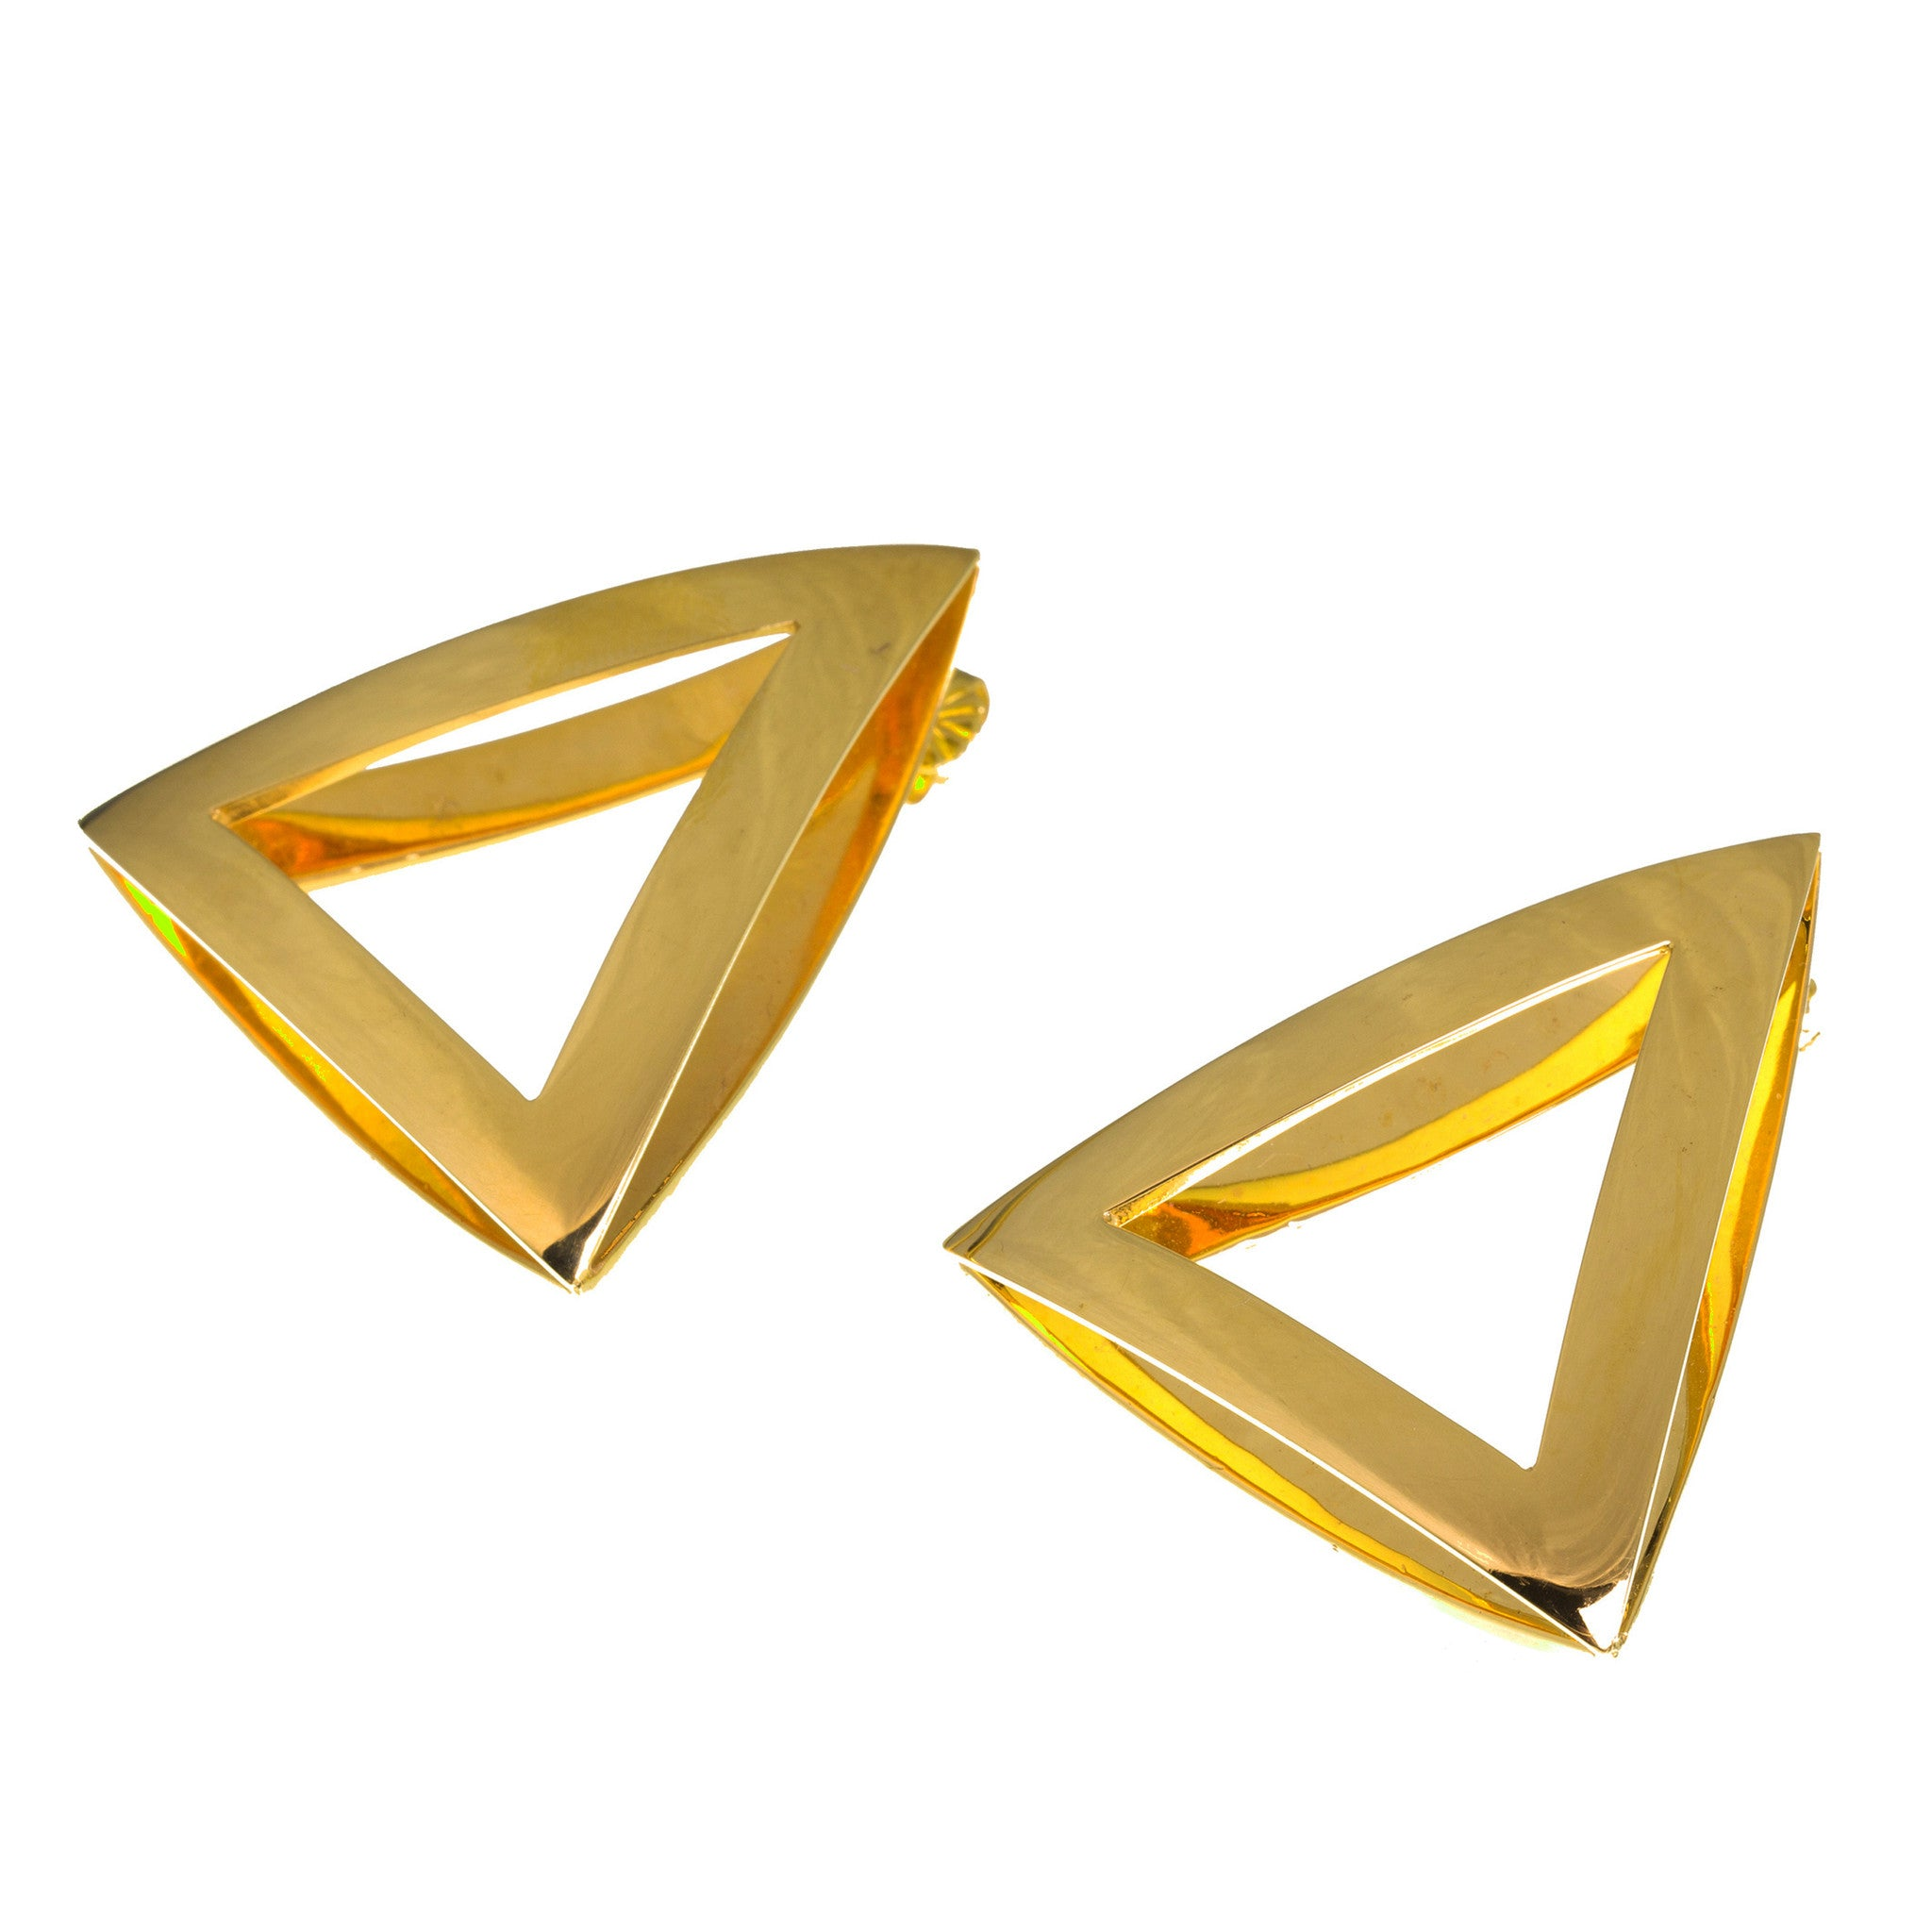 Coco\'s Liberty: Galactic earrings | Jewelry -  Hiphunters Shop